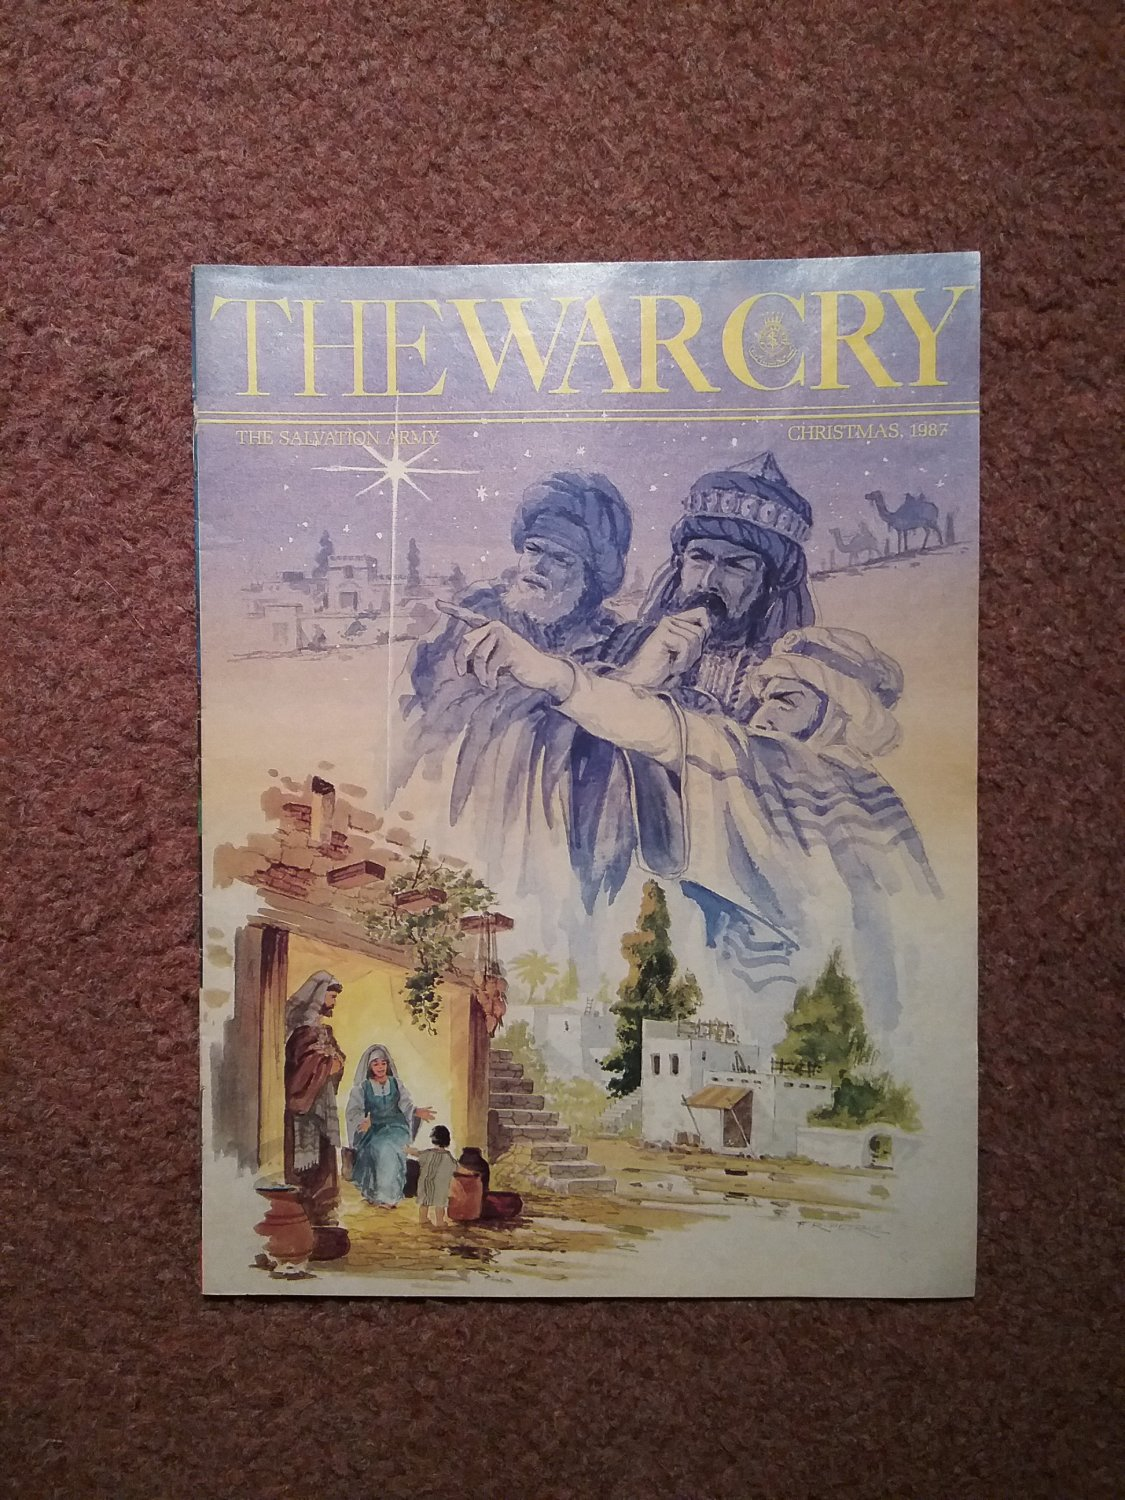 The War Cry, Christmas 1987, The Salvation Army Publication 0707161362